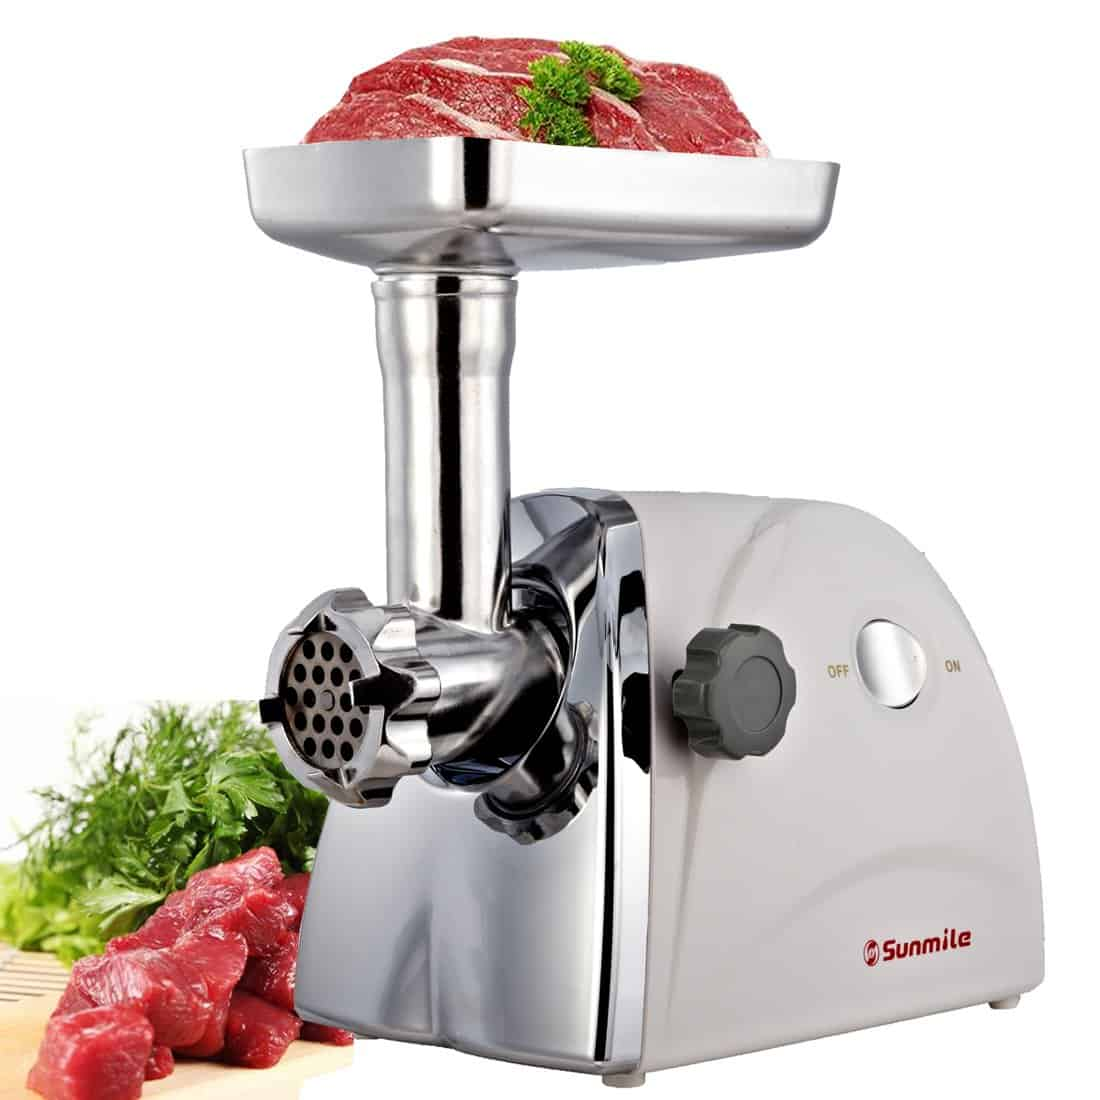 Sunmile Meat Grinder Reviews